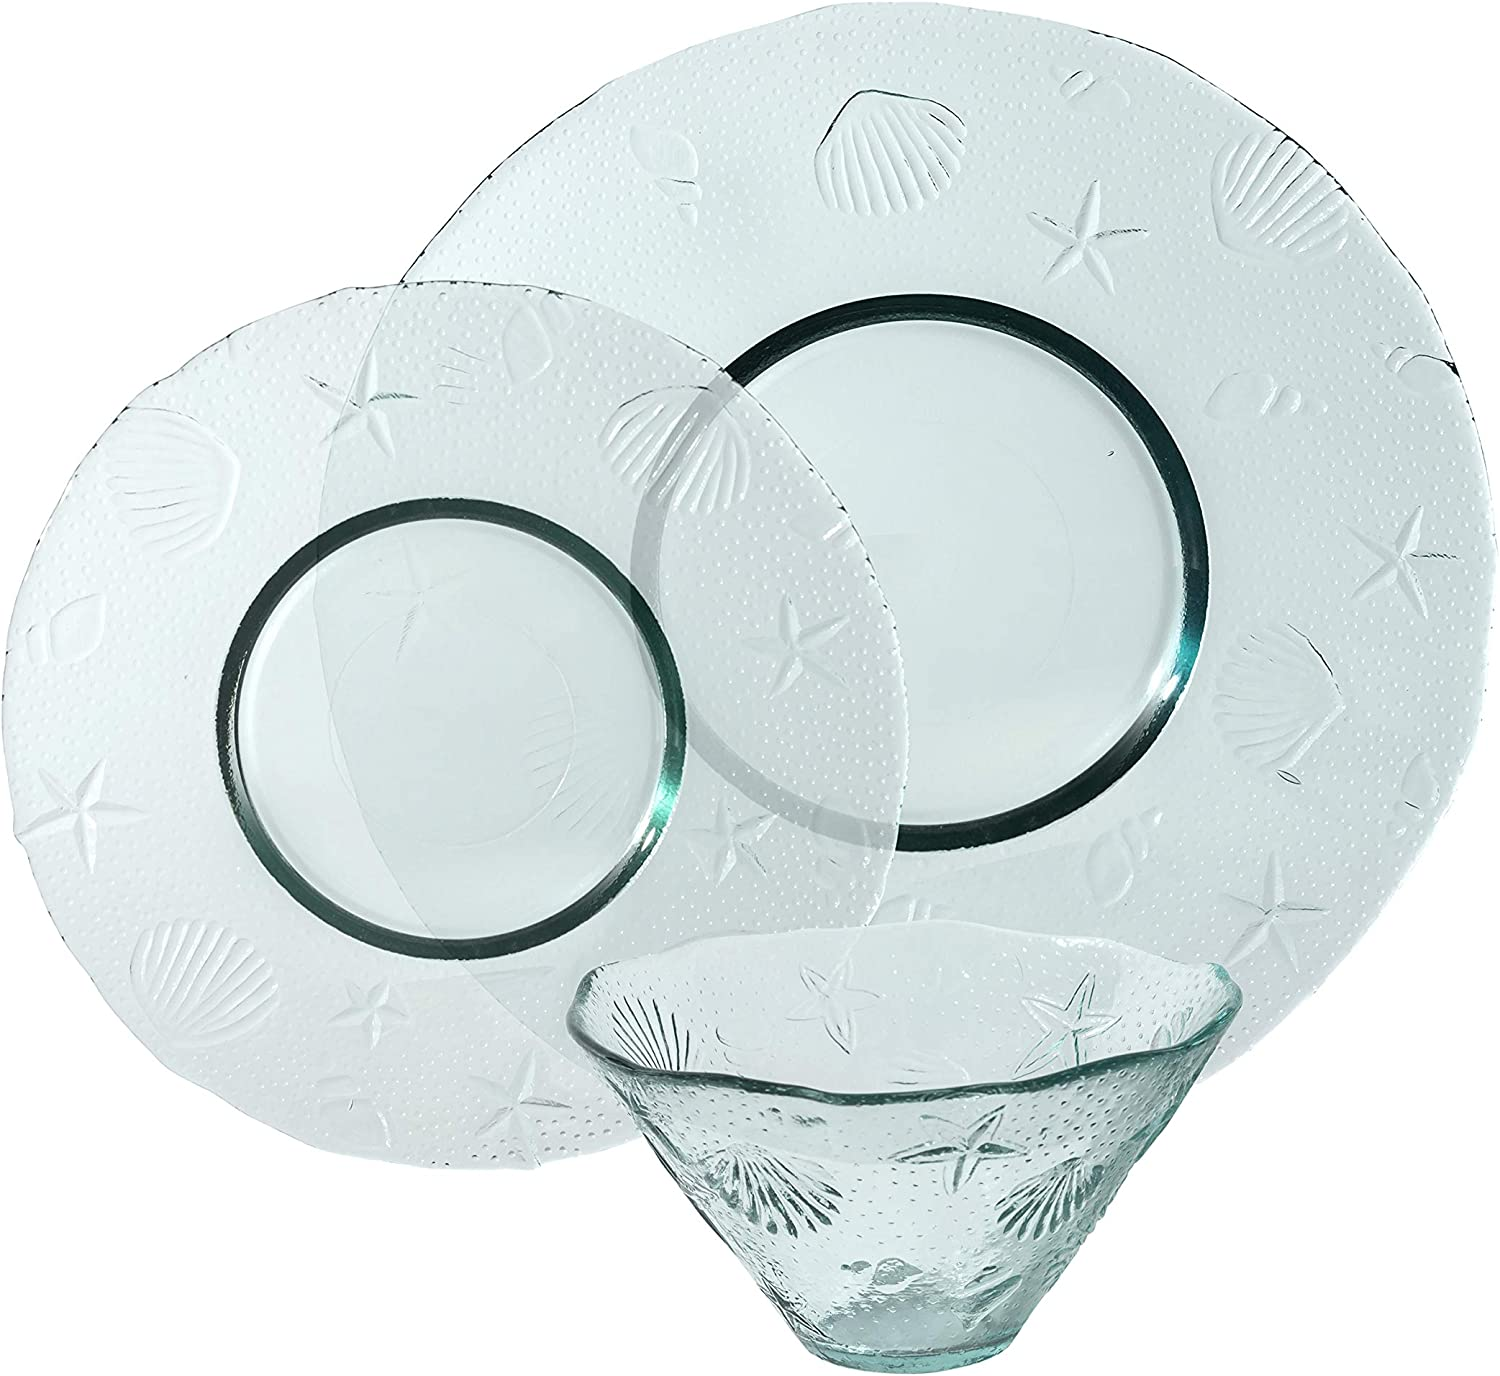 French Home Recycled Clear Glass, 12 piece Coastal Dinnerware Set, Service for 4